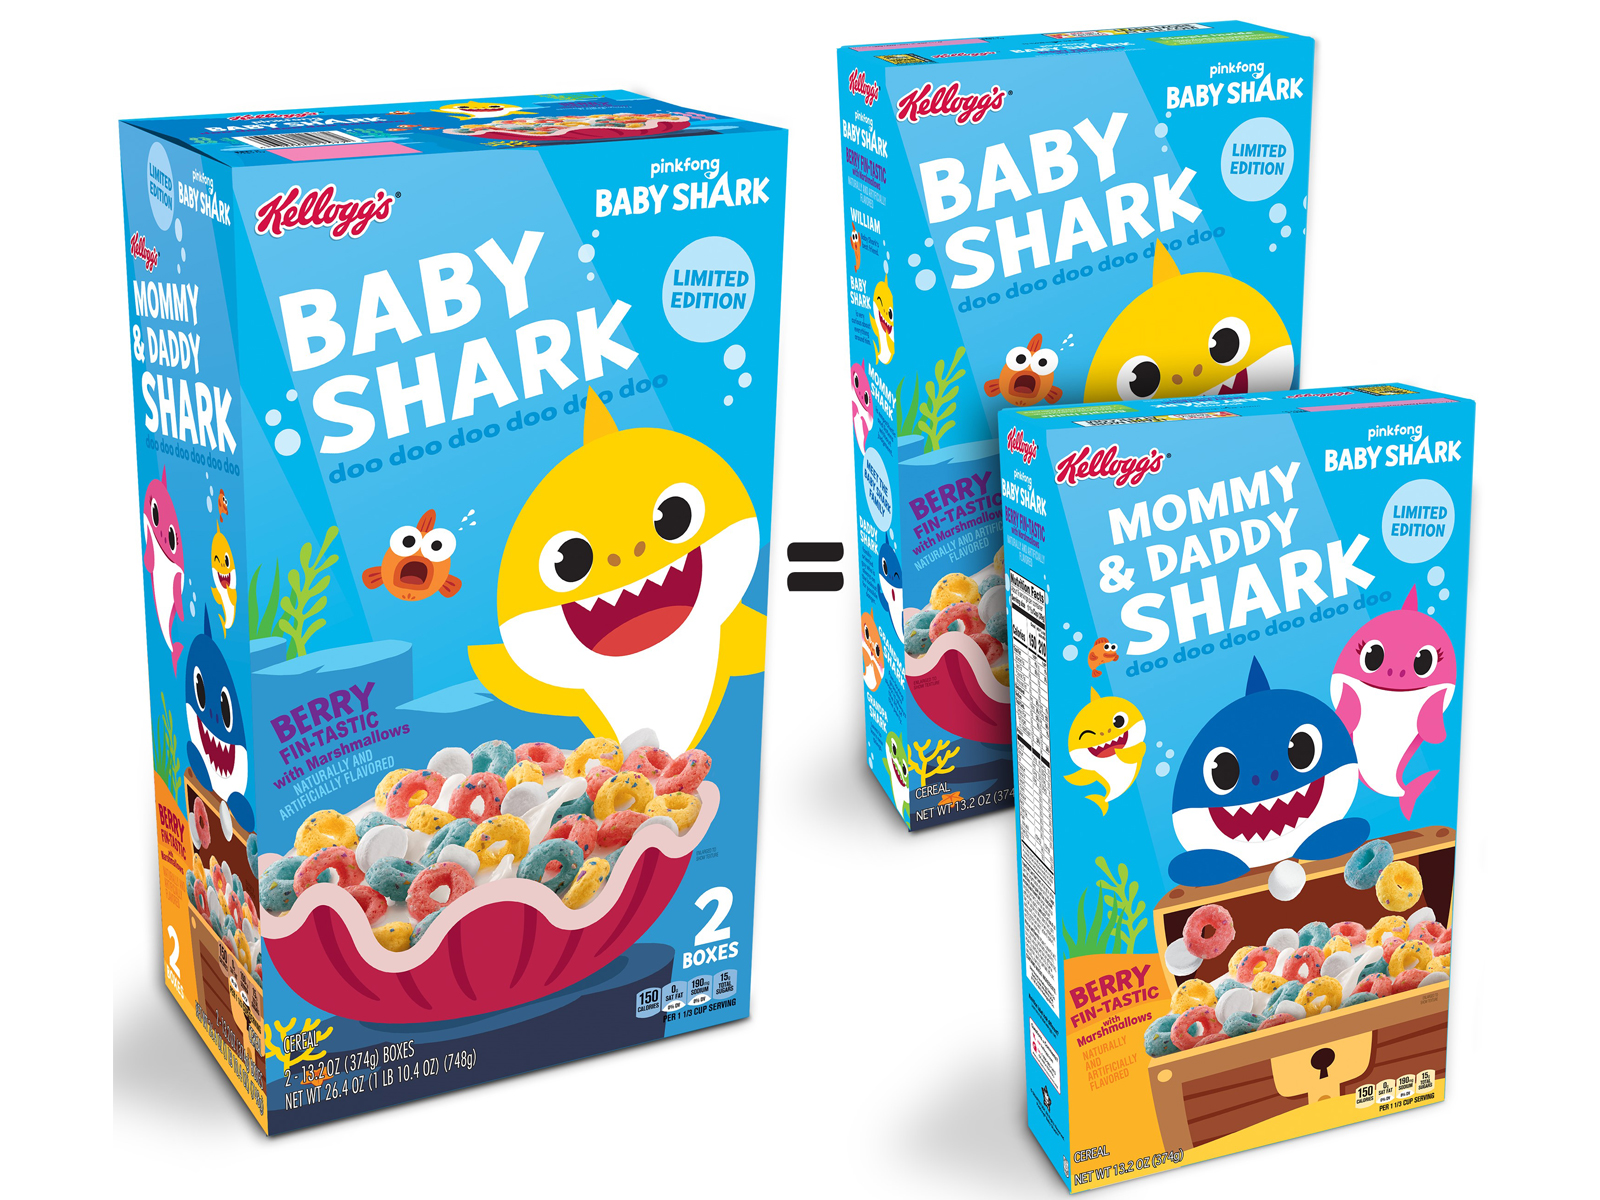 baby-shark-cereal-kelloggs-FT-BLOG0729.jpg